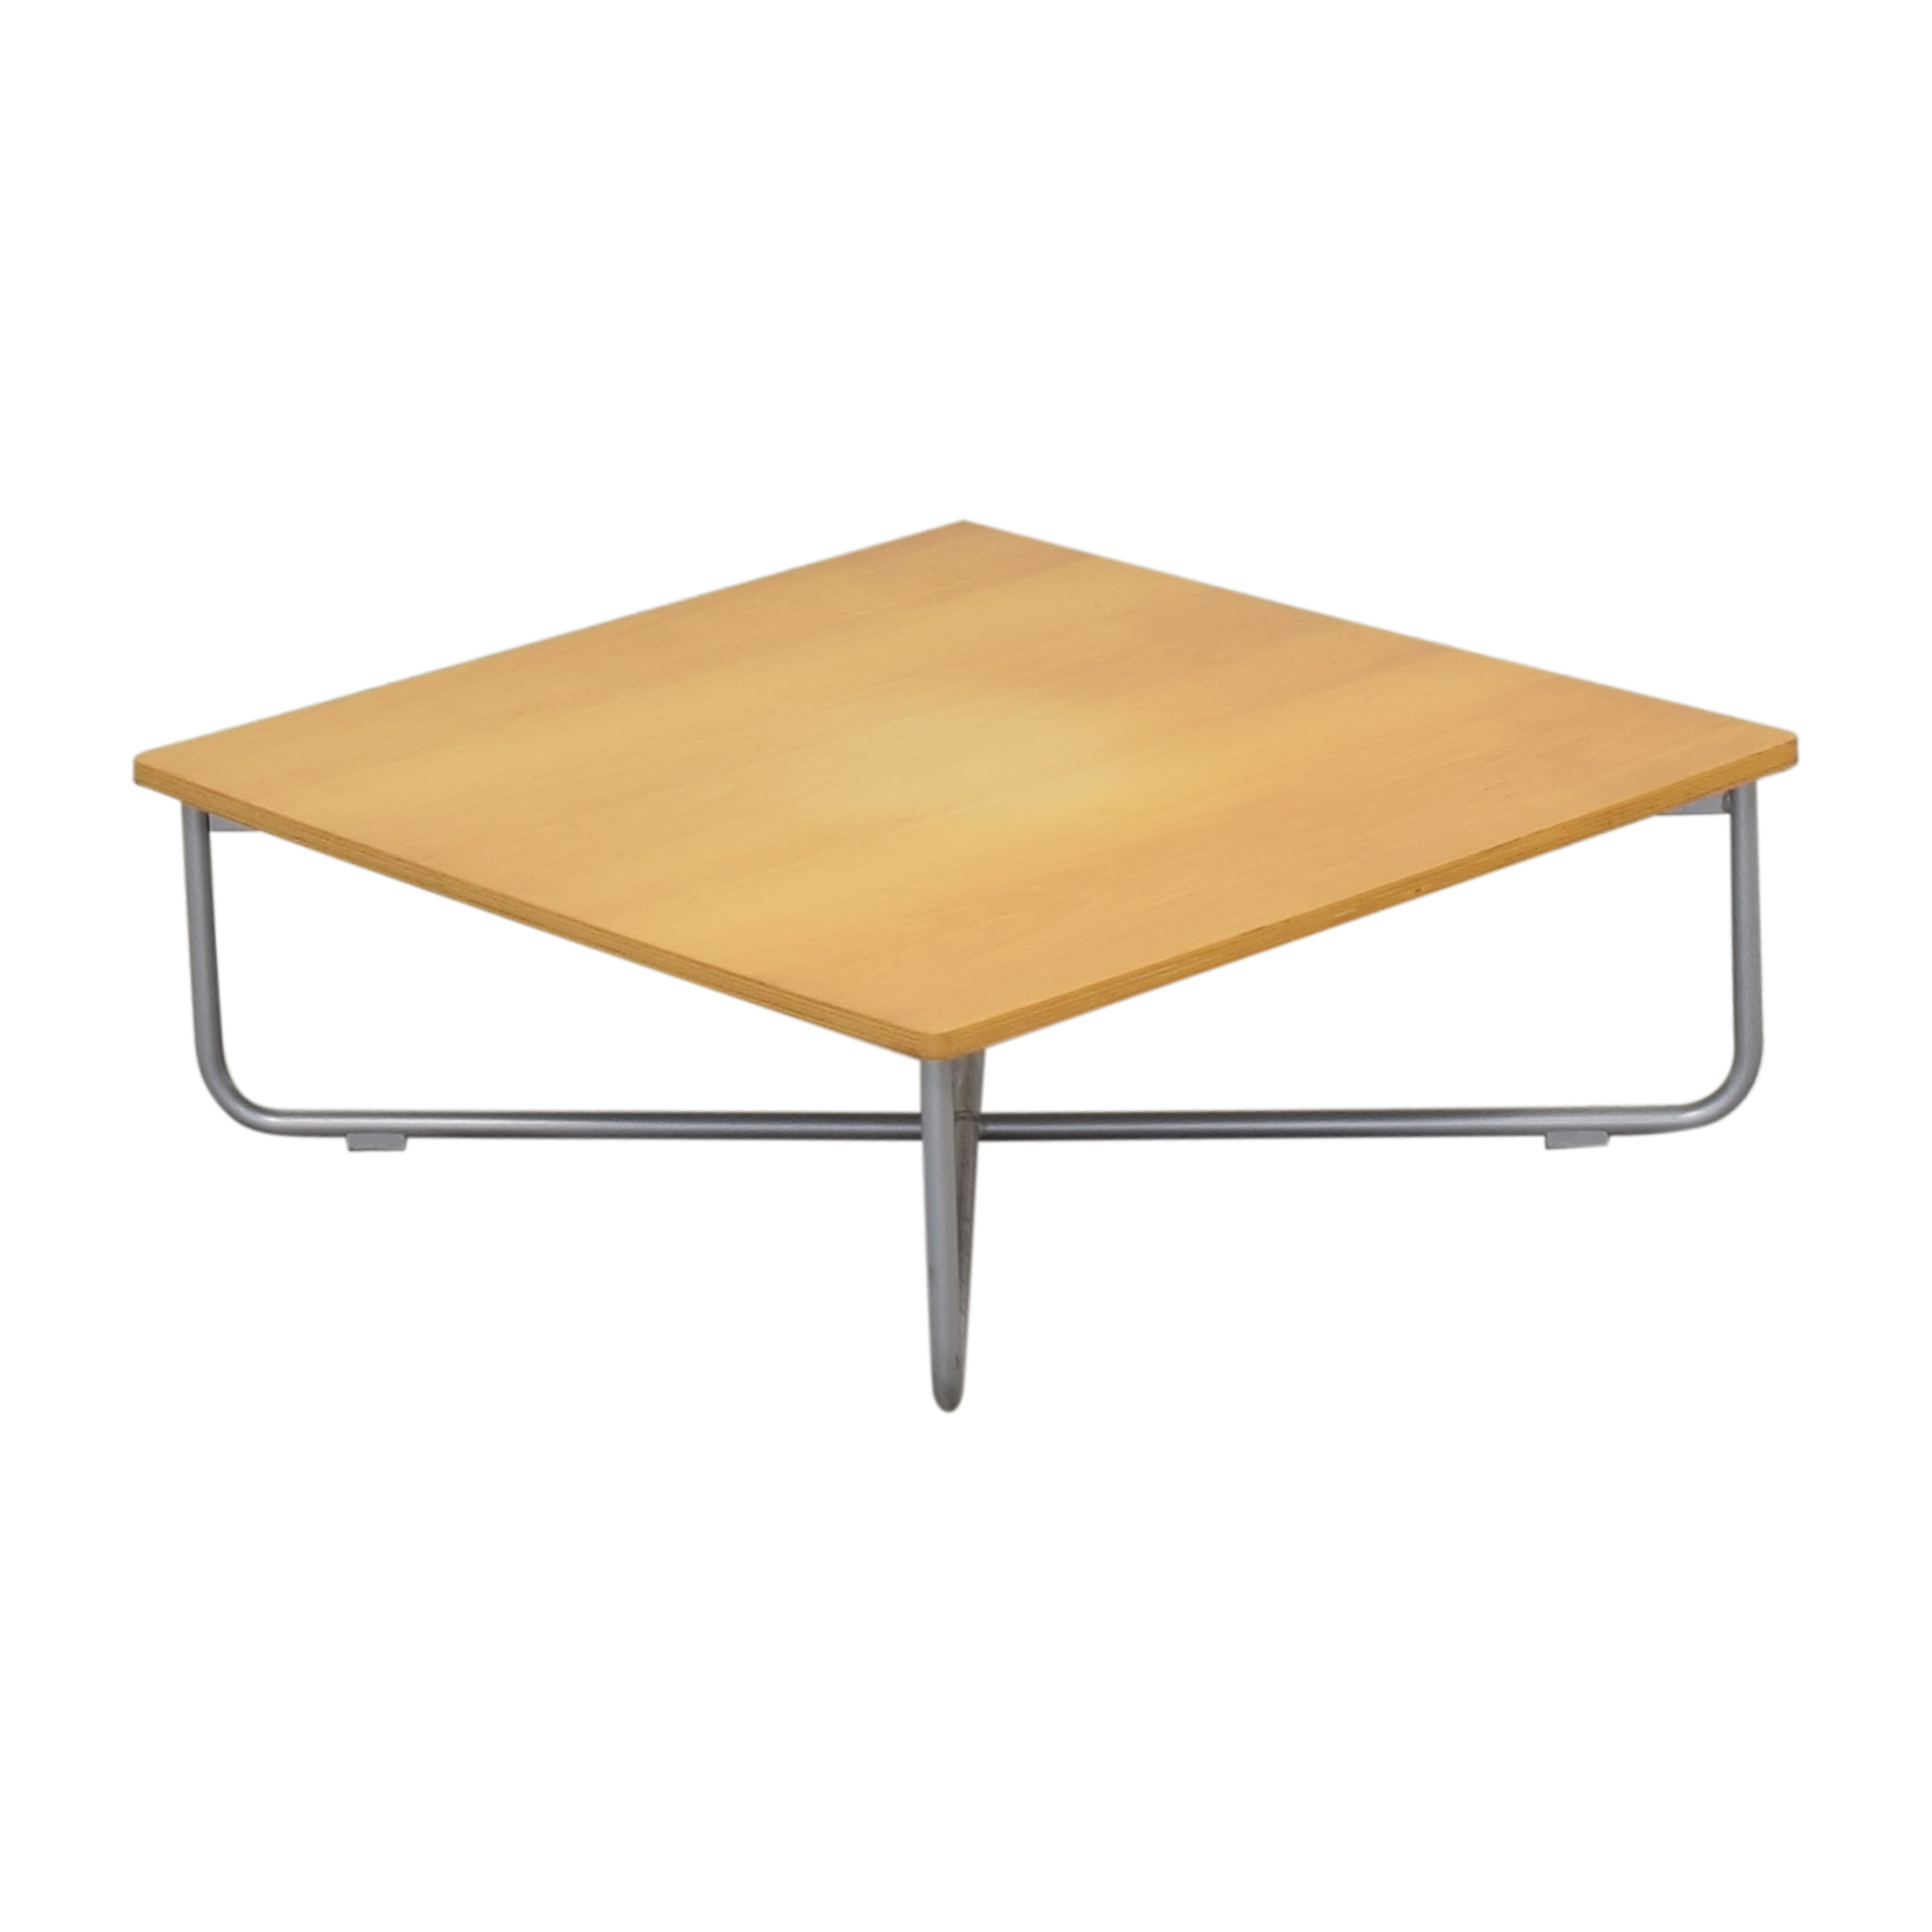 Swedese Swedese Havanna Small Table ct